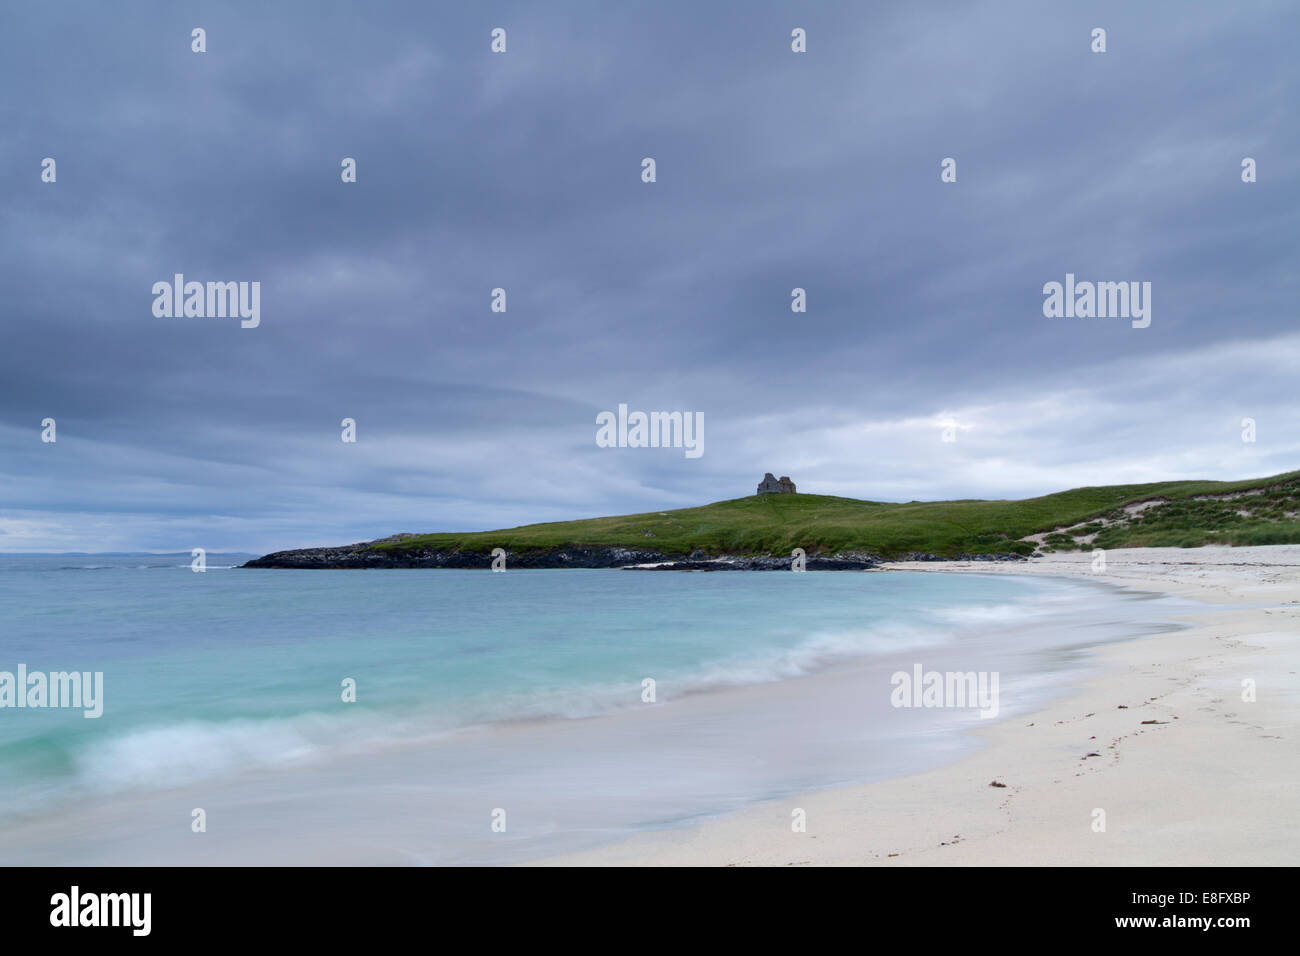 Toe Head Chapel, Isle of Harris, Outer Hebrides, Scotland - Stock Image